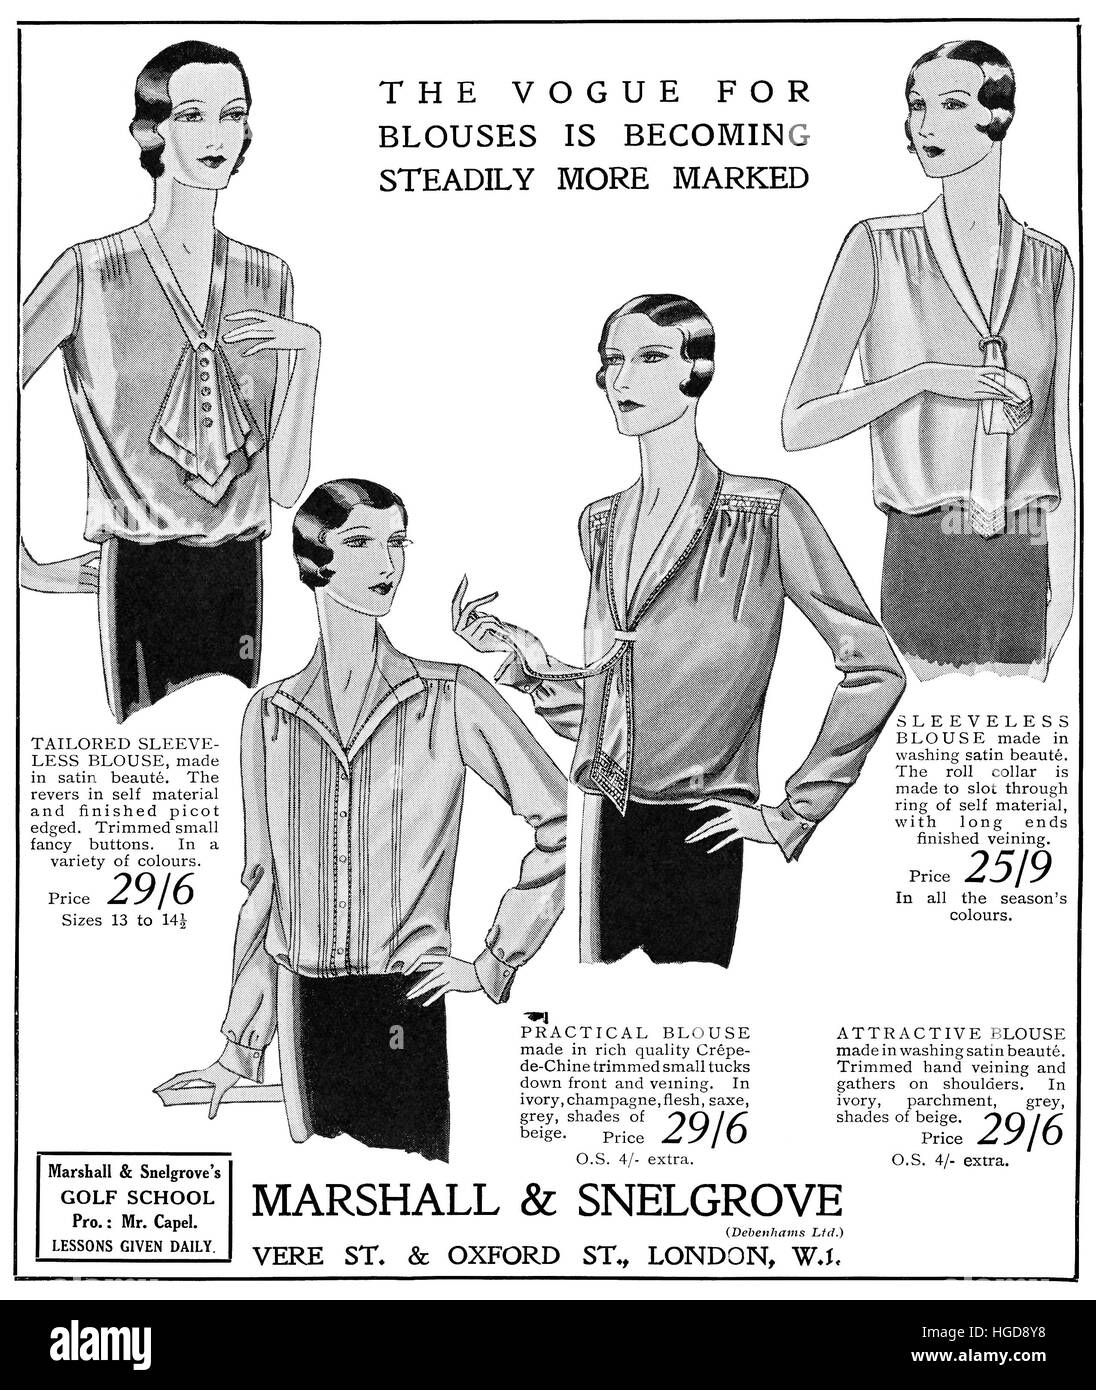 1930 British advertisement for Marshall & Snelgrove Department Stores - Stock Image